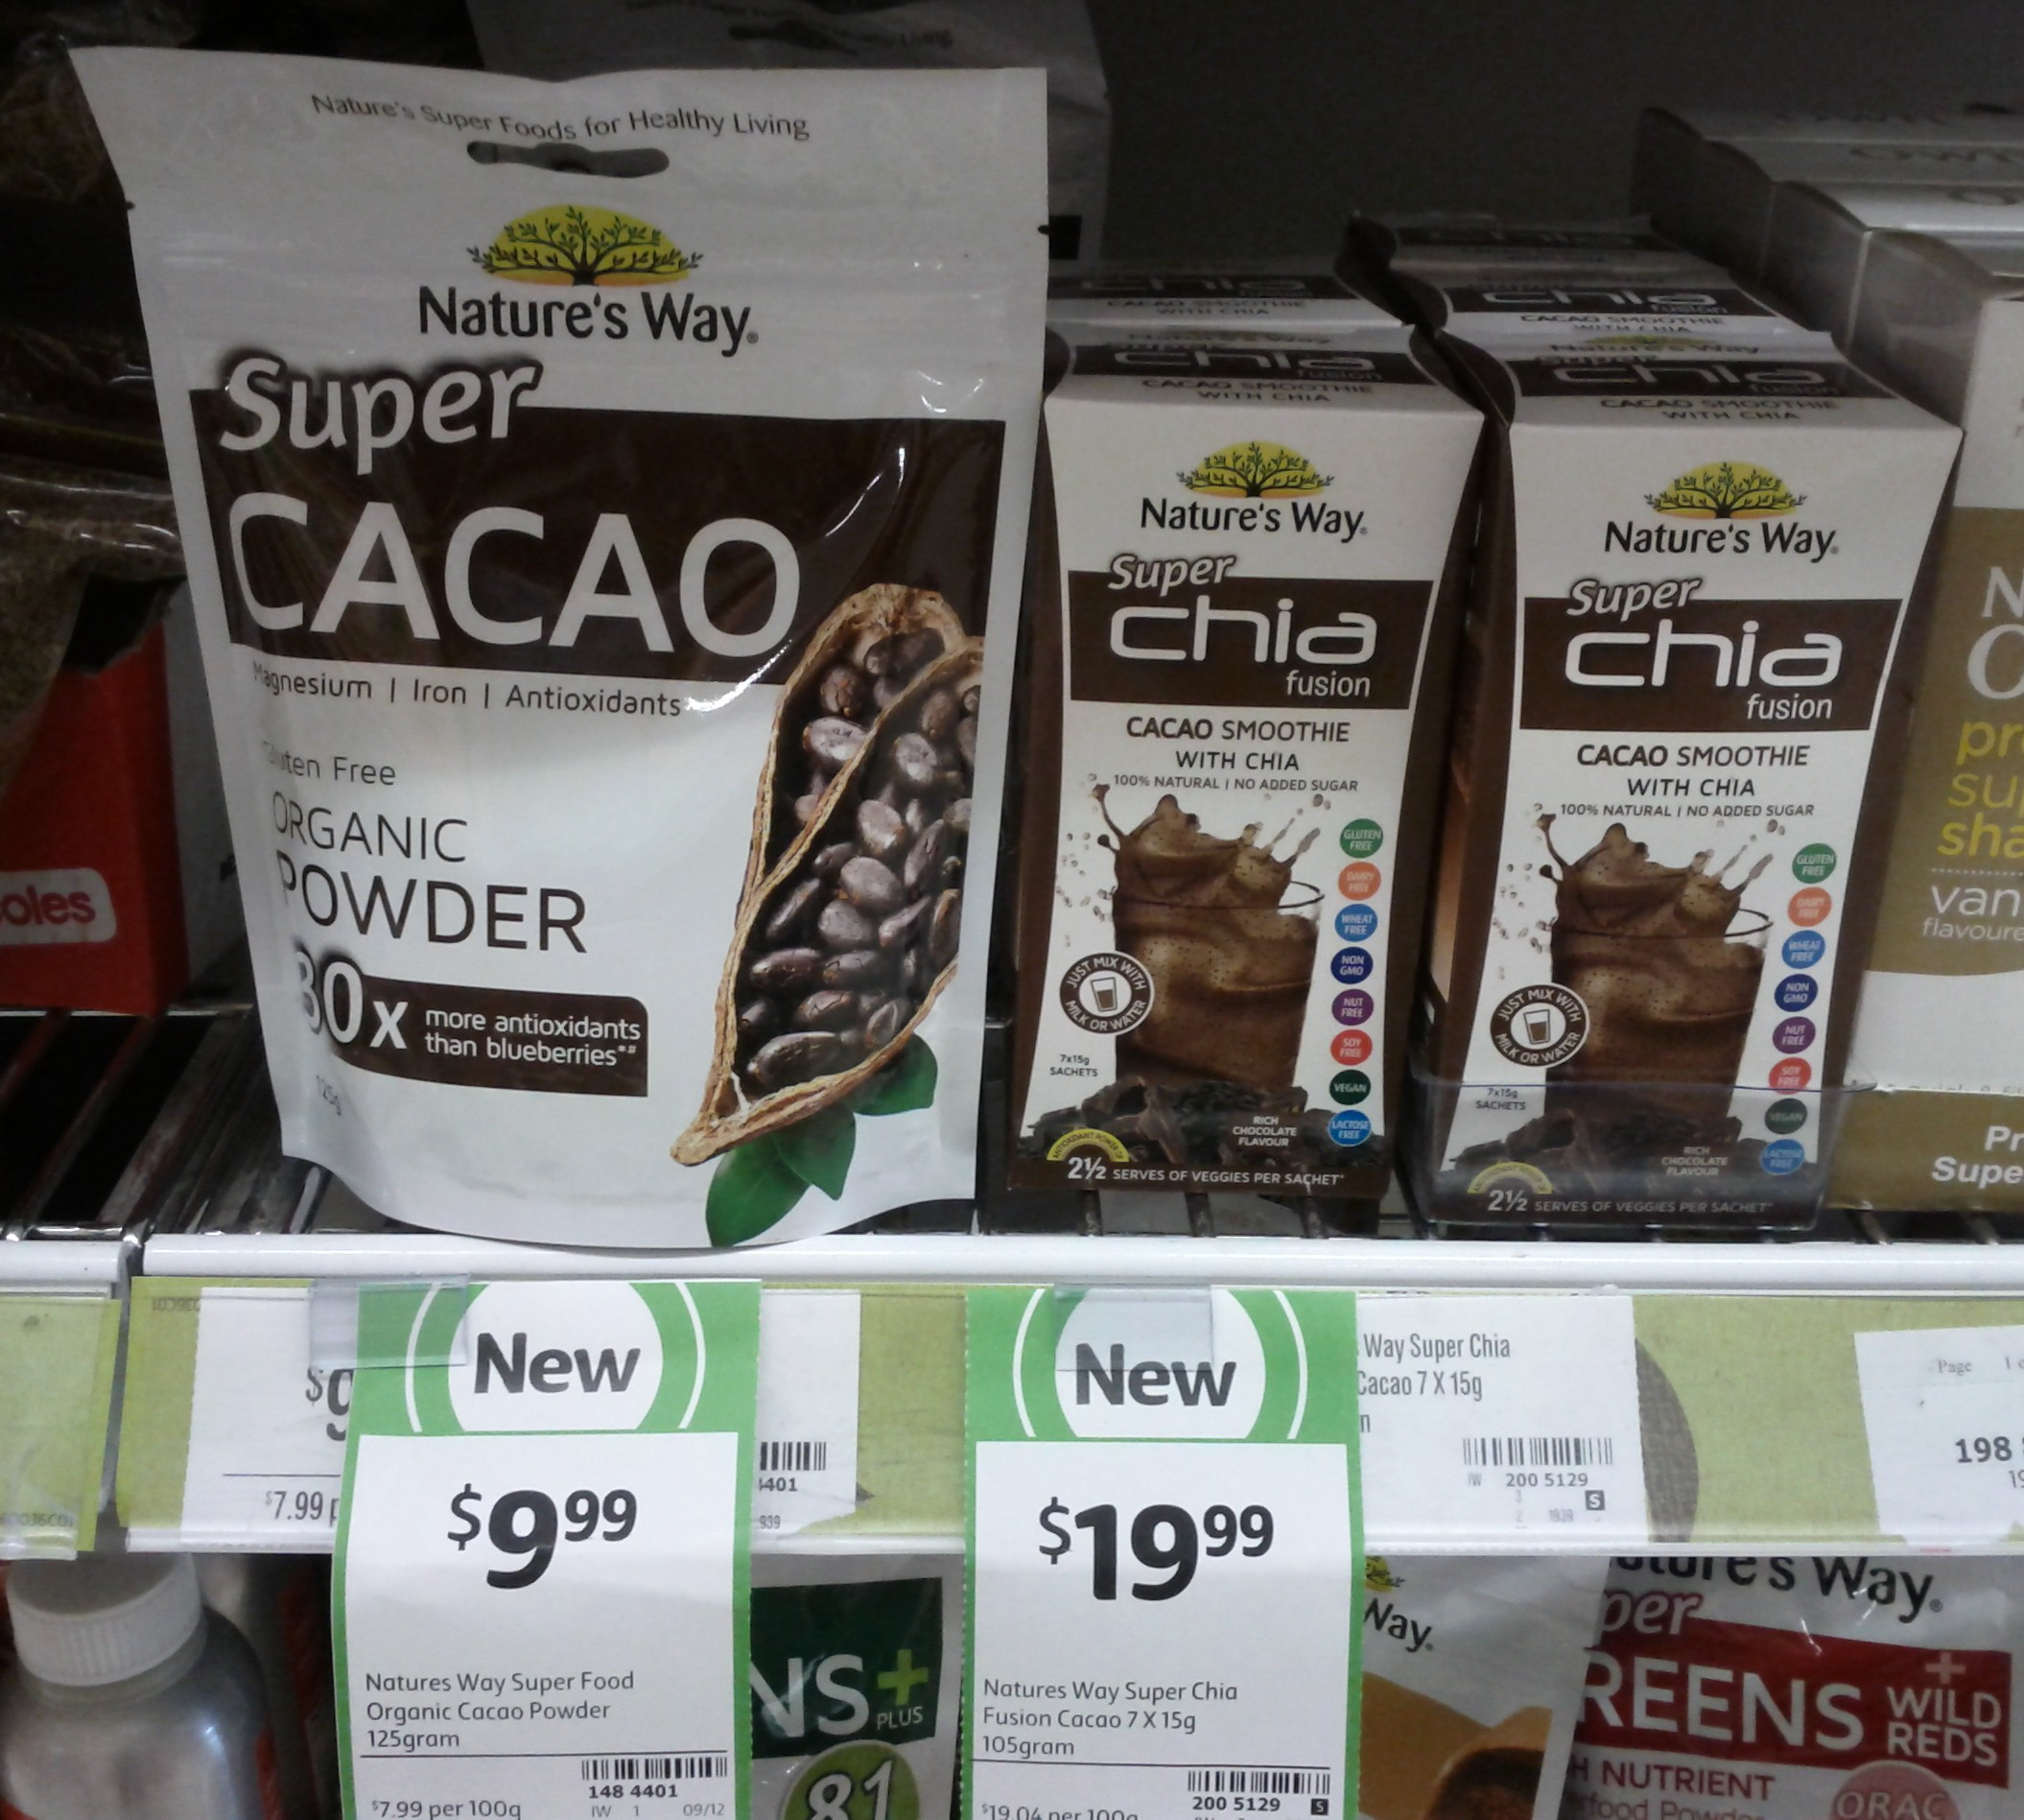 Nature's Way 125g Super Cacao, 105g Super Chia Fusion